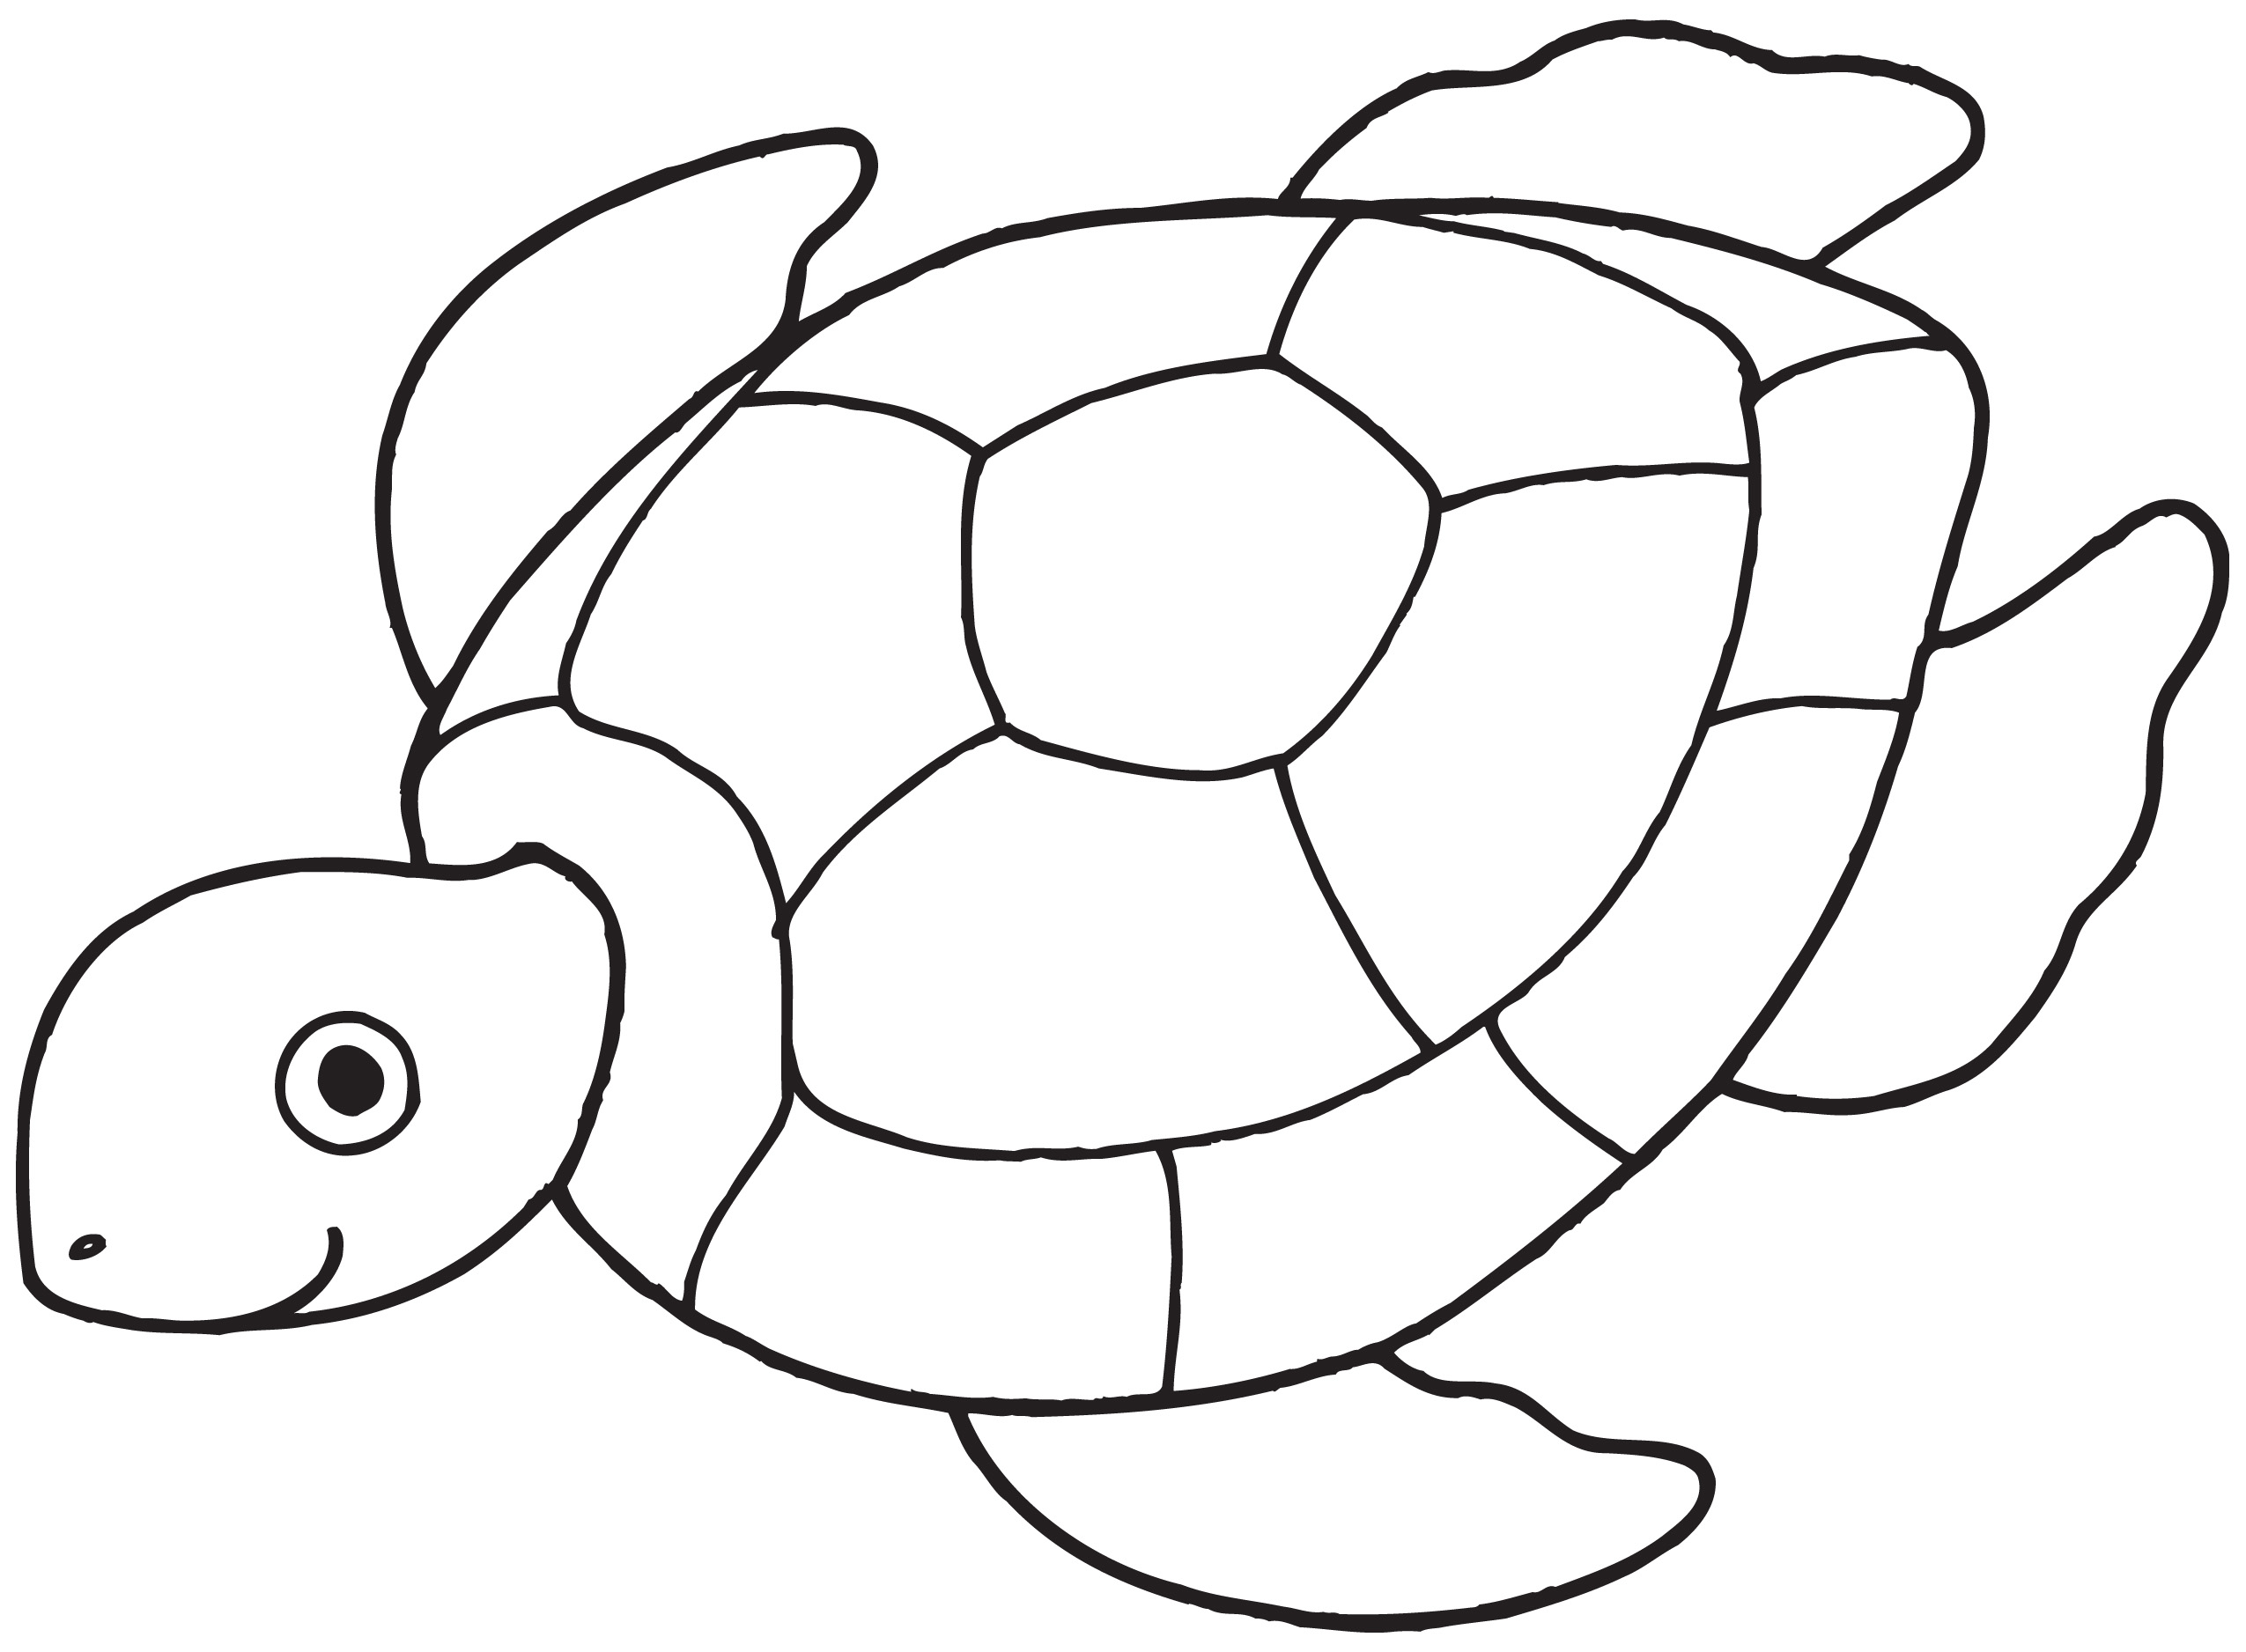 Free coloring pages under the sea - Free Printable Coloring Pages Turtles Sea Turtle Clipart Black And White Clipart Panda Free Clipart